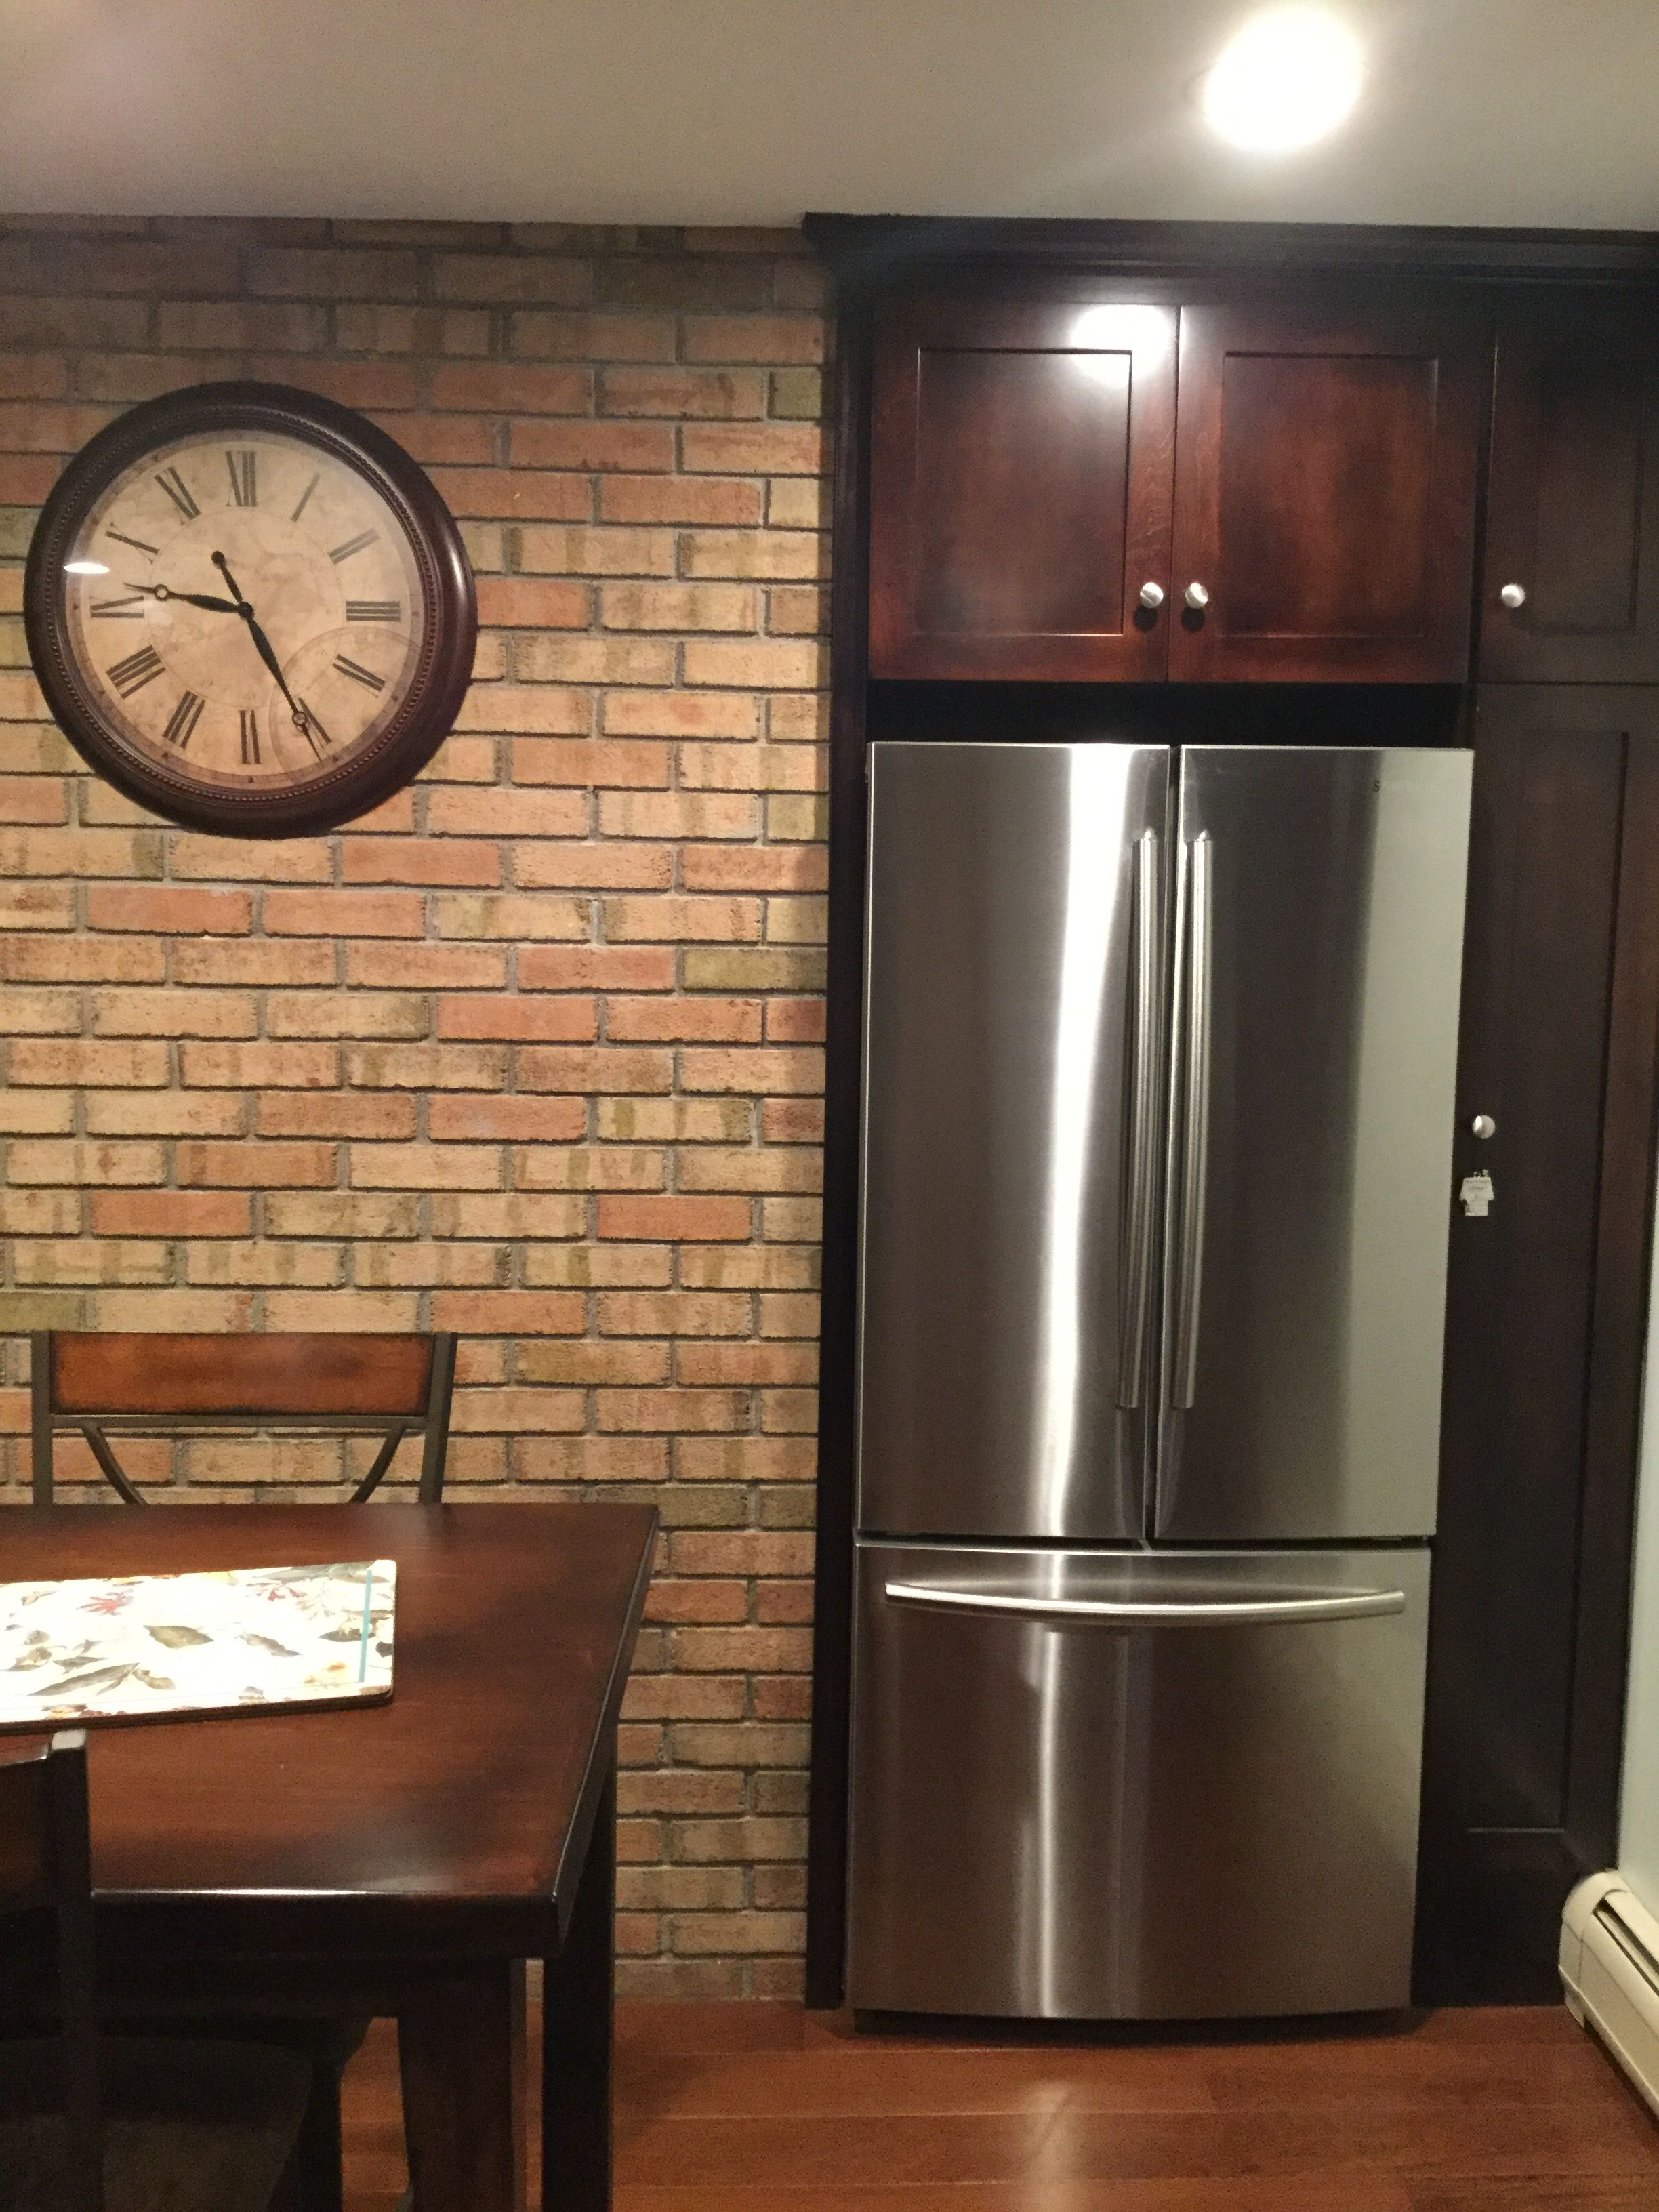 Pin by Marg2016 on Dark cabinets | Dark cabinets, French ...